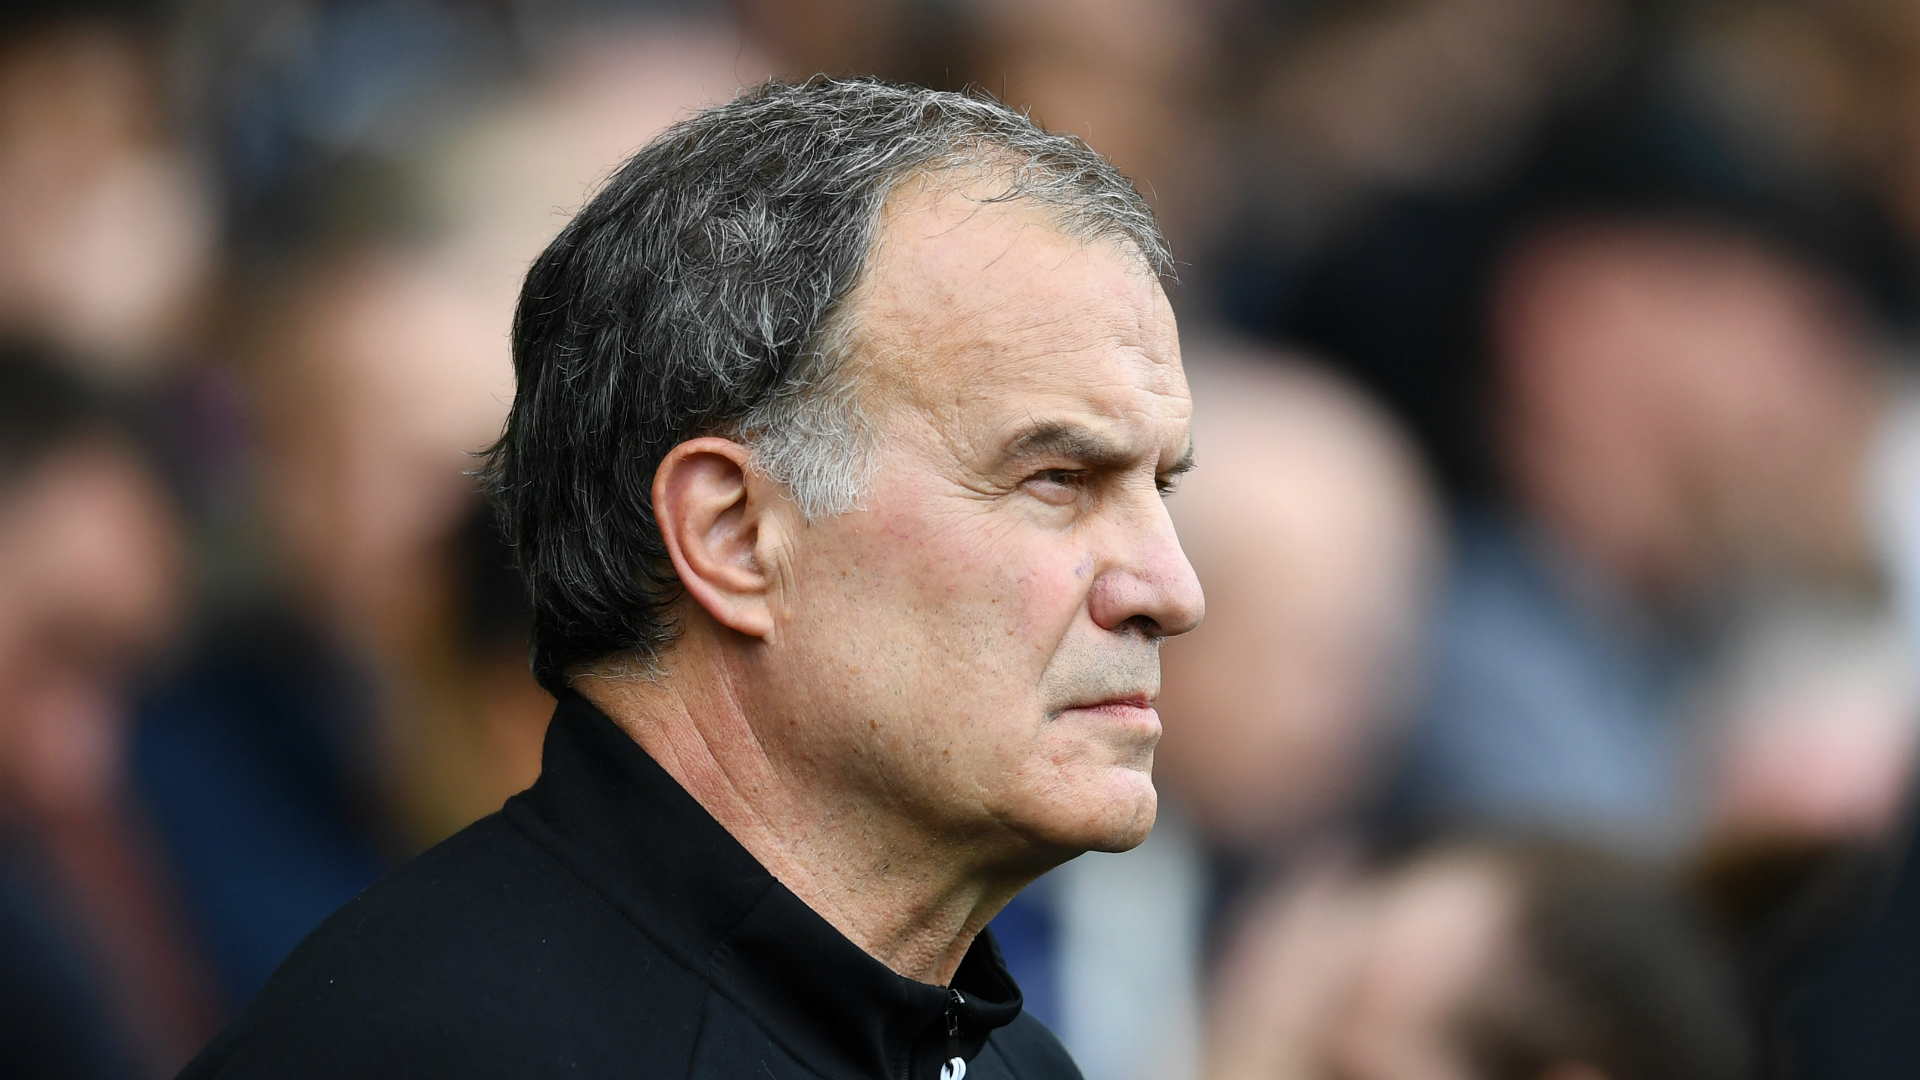 Derby County came from behind to reach the Championship play-off final, but Marcelo Bielsa may decide to stay at Leeds United.